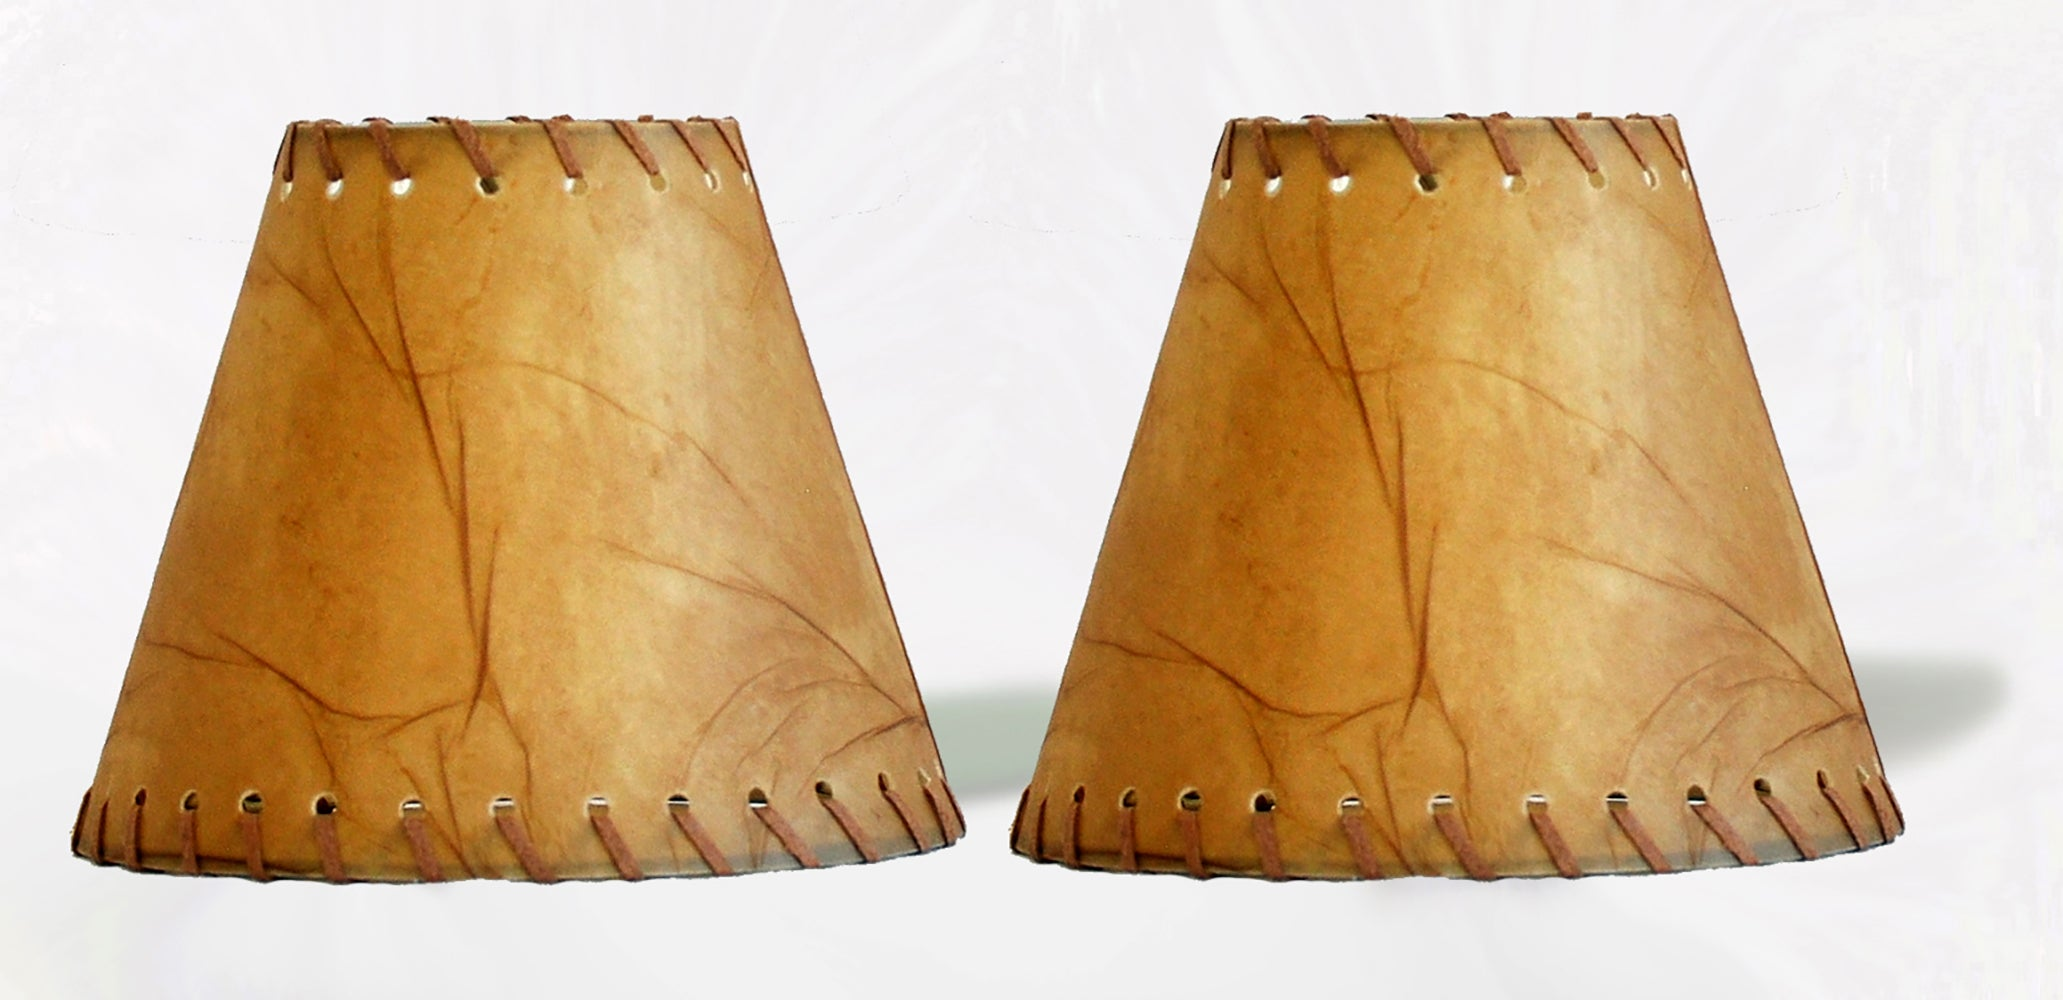 Faux Leather 6-inch Chandelier Lamp Shade with Trim